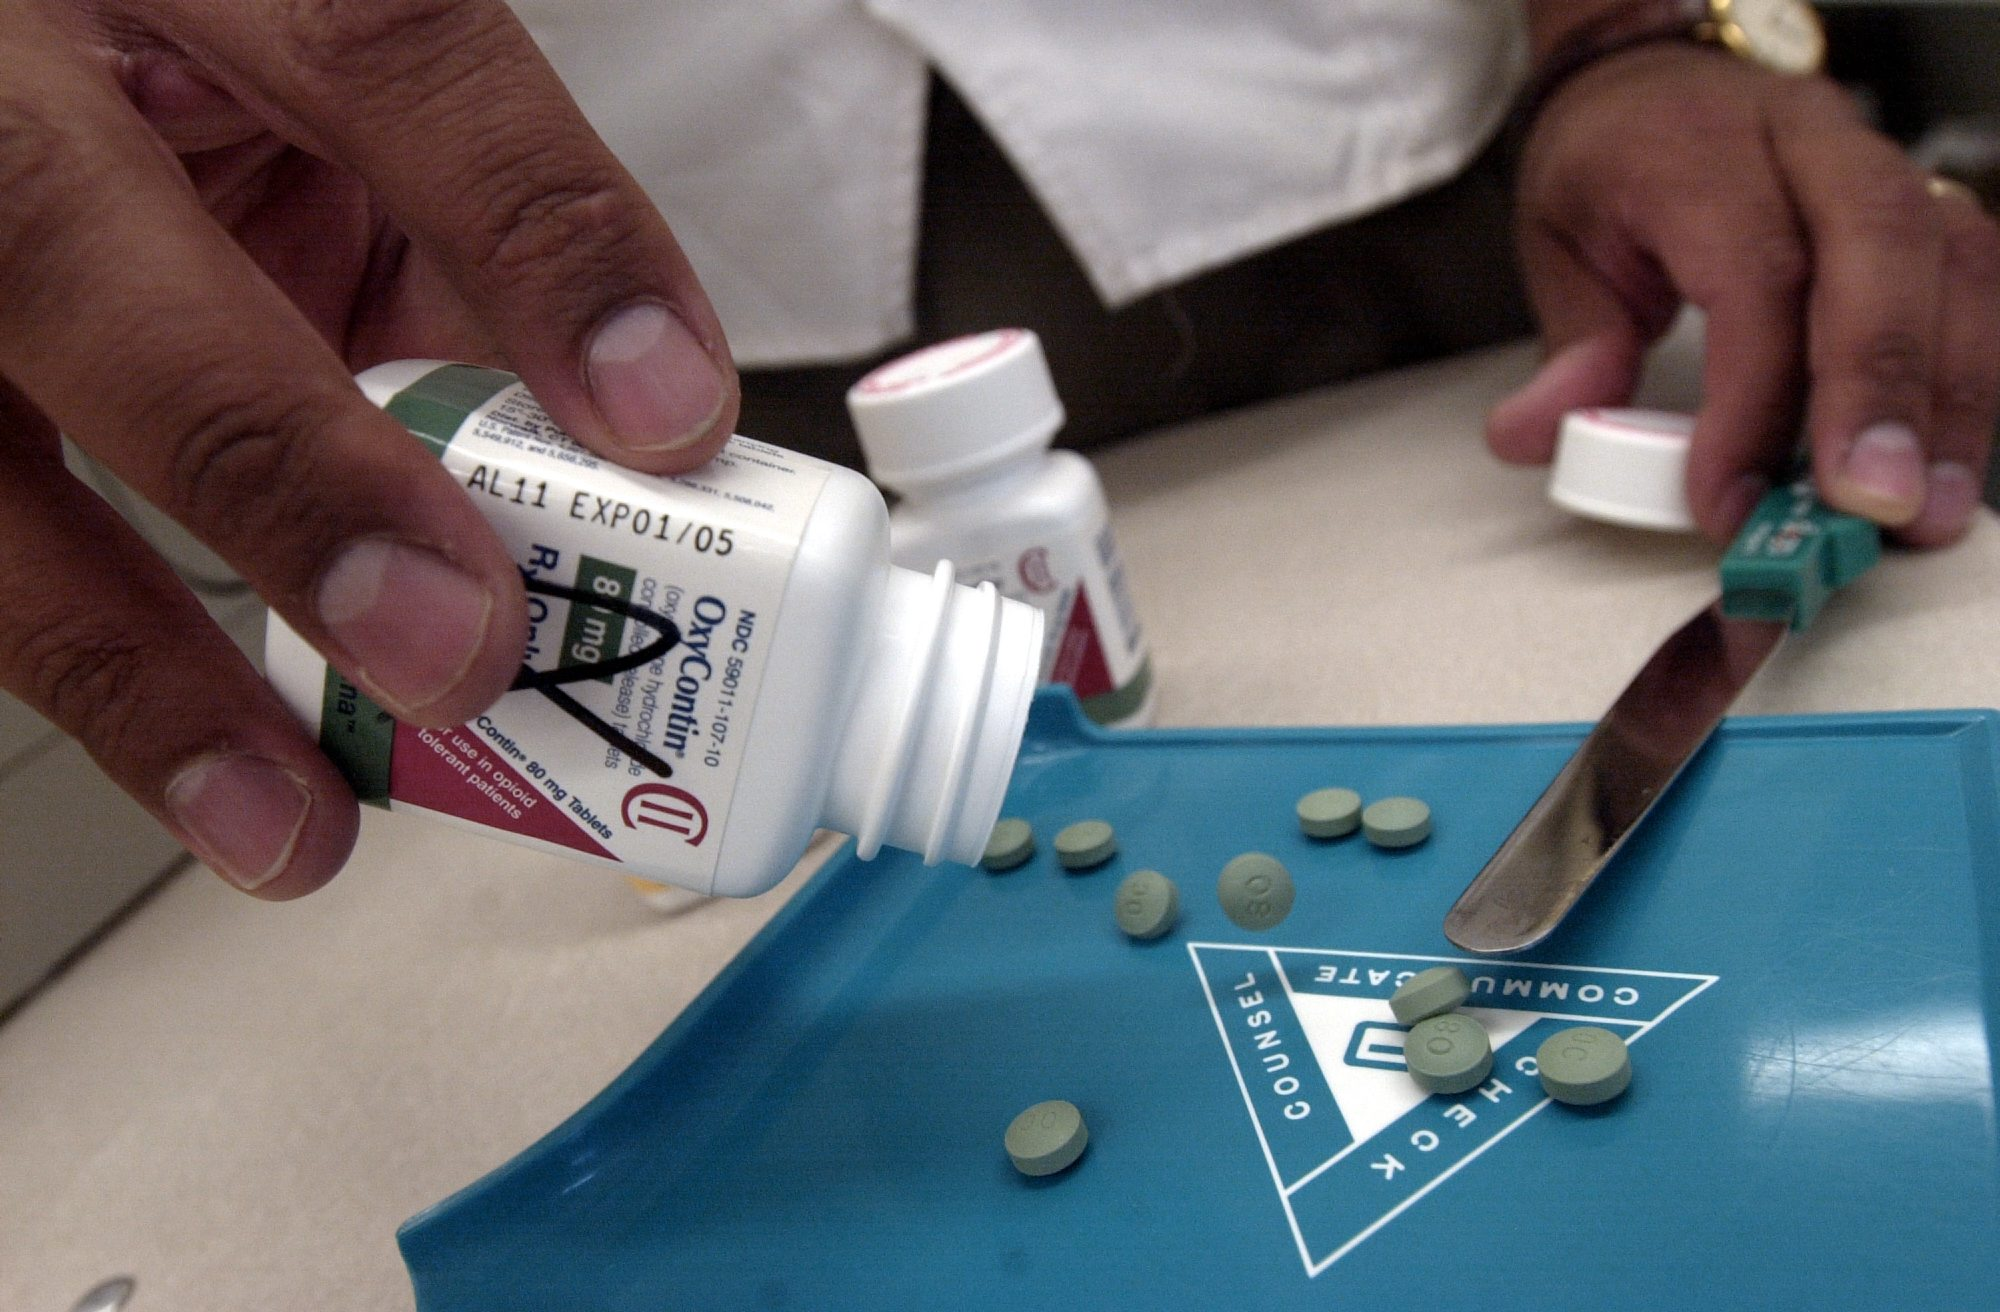 The prescription medicine OxyContin is a powerful painkiller. It's manufactured to relieve the pain of seriously ill people, but it is often used by some addicts to achieve a high similar to a heroin rush. (Getty Images)